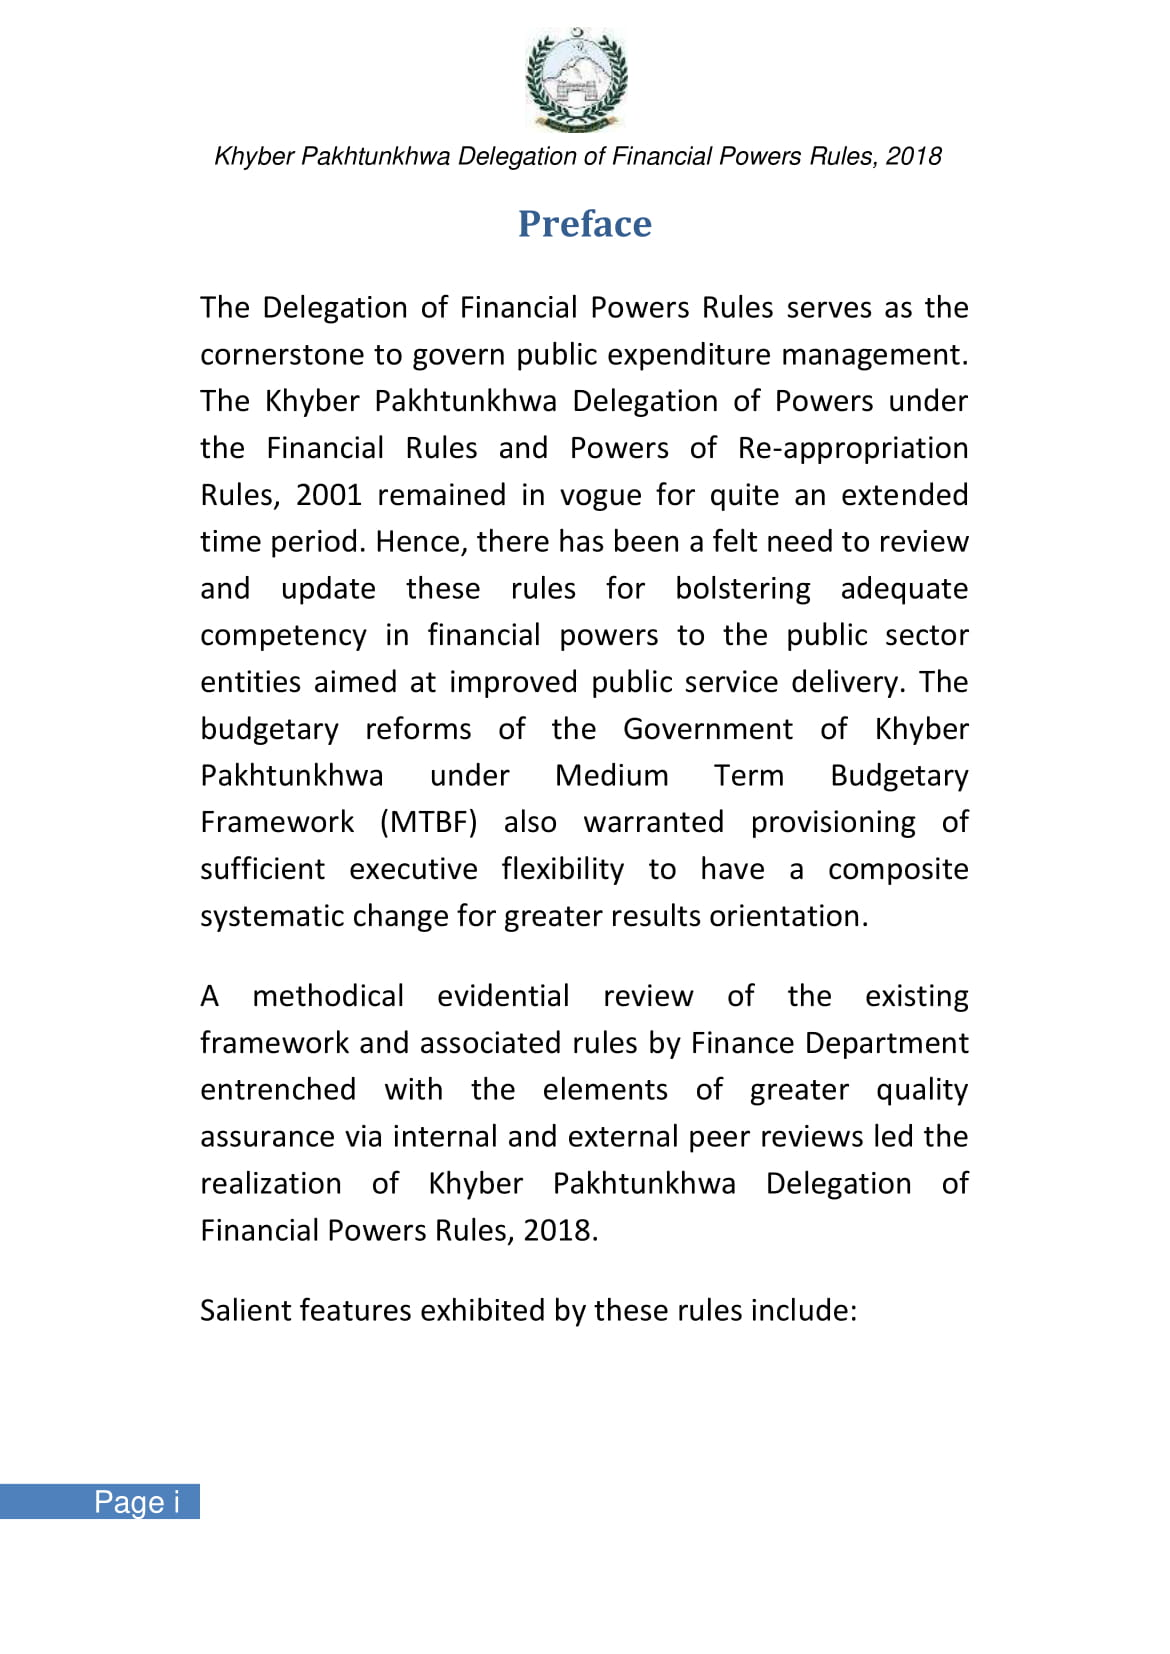 kp-delegation-of-financial-power-rules-2018-03